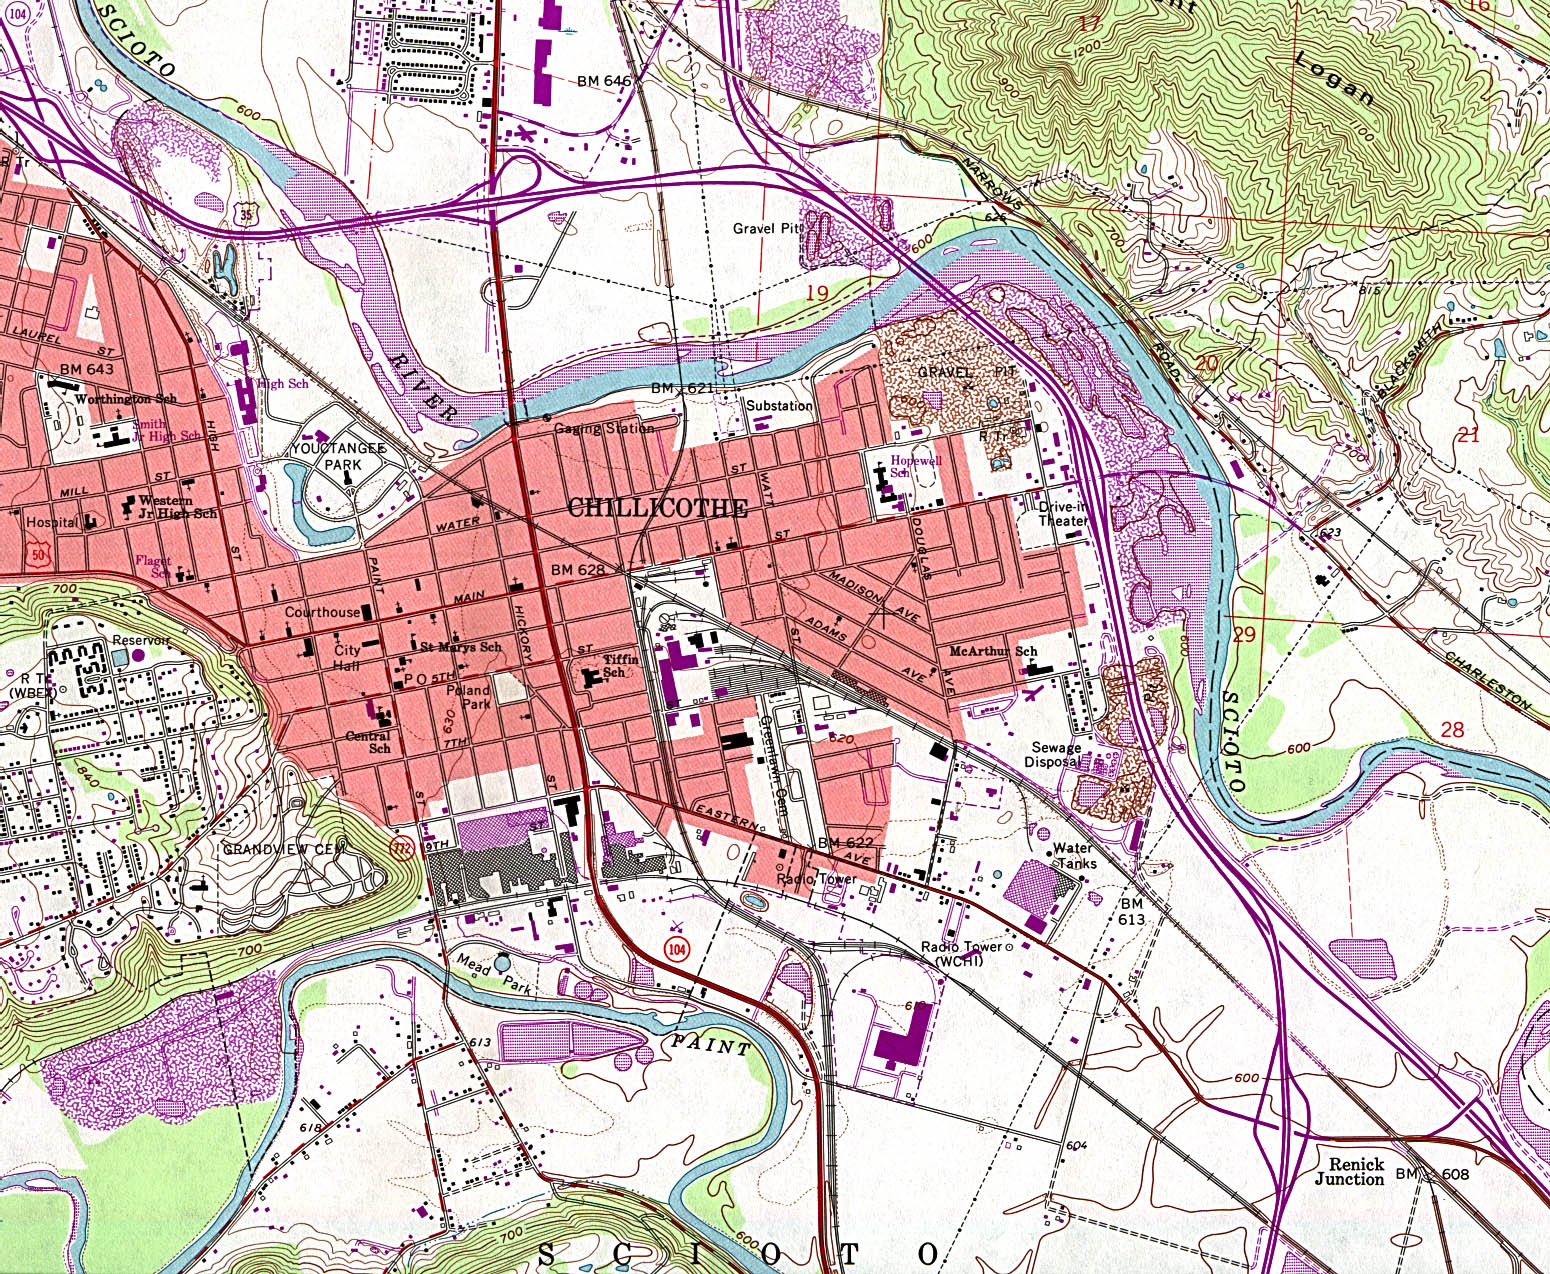 Chillicothe Topographic City Map, Ohio, United States